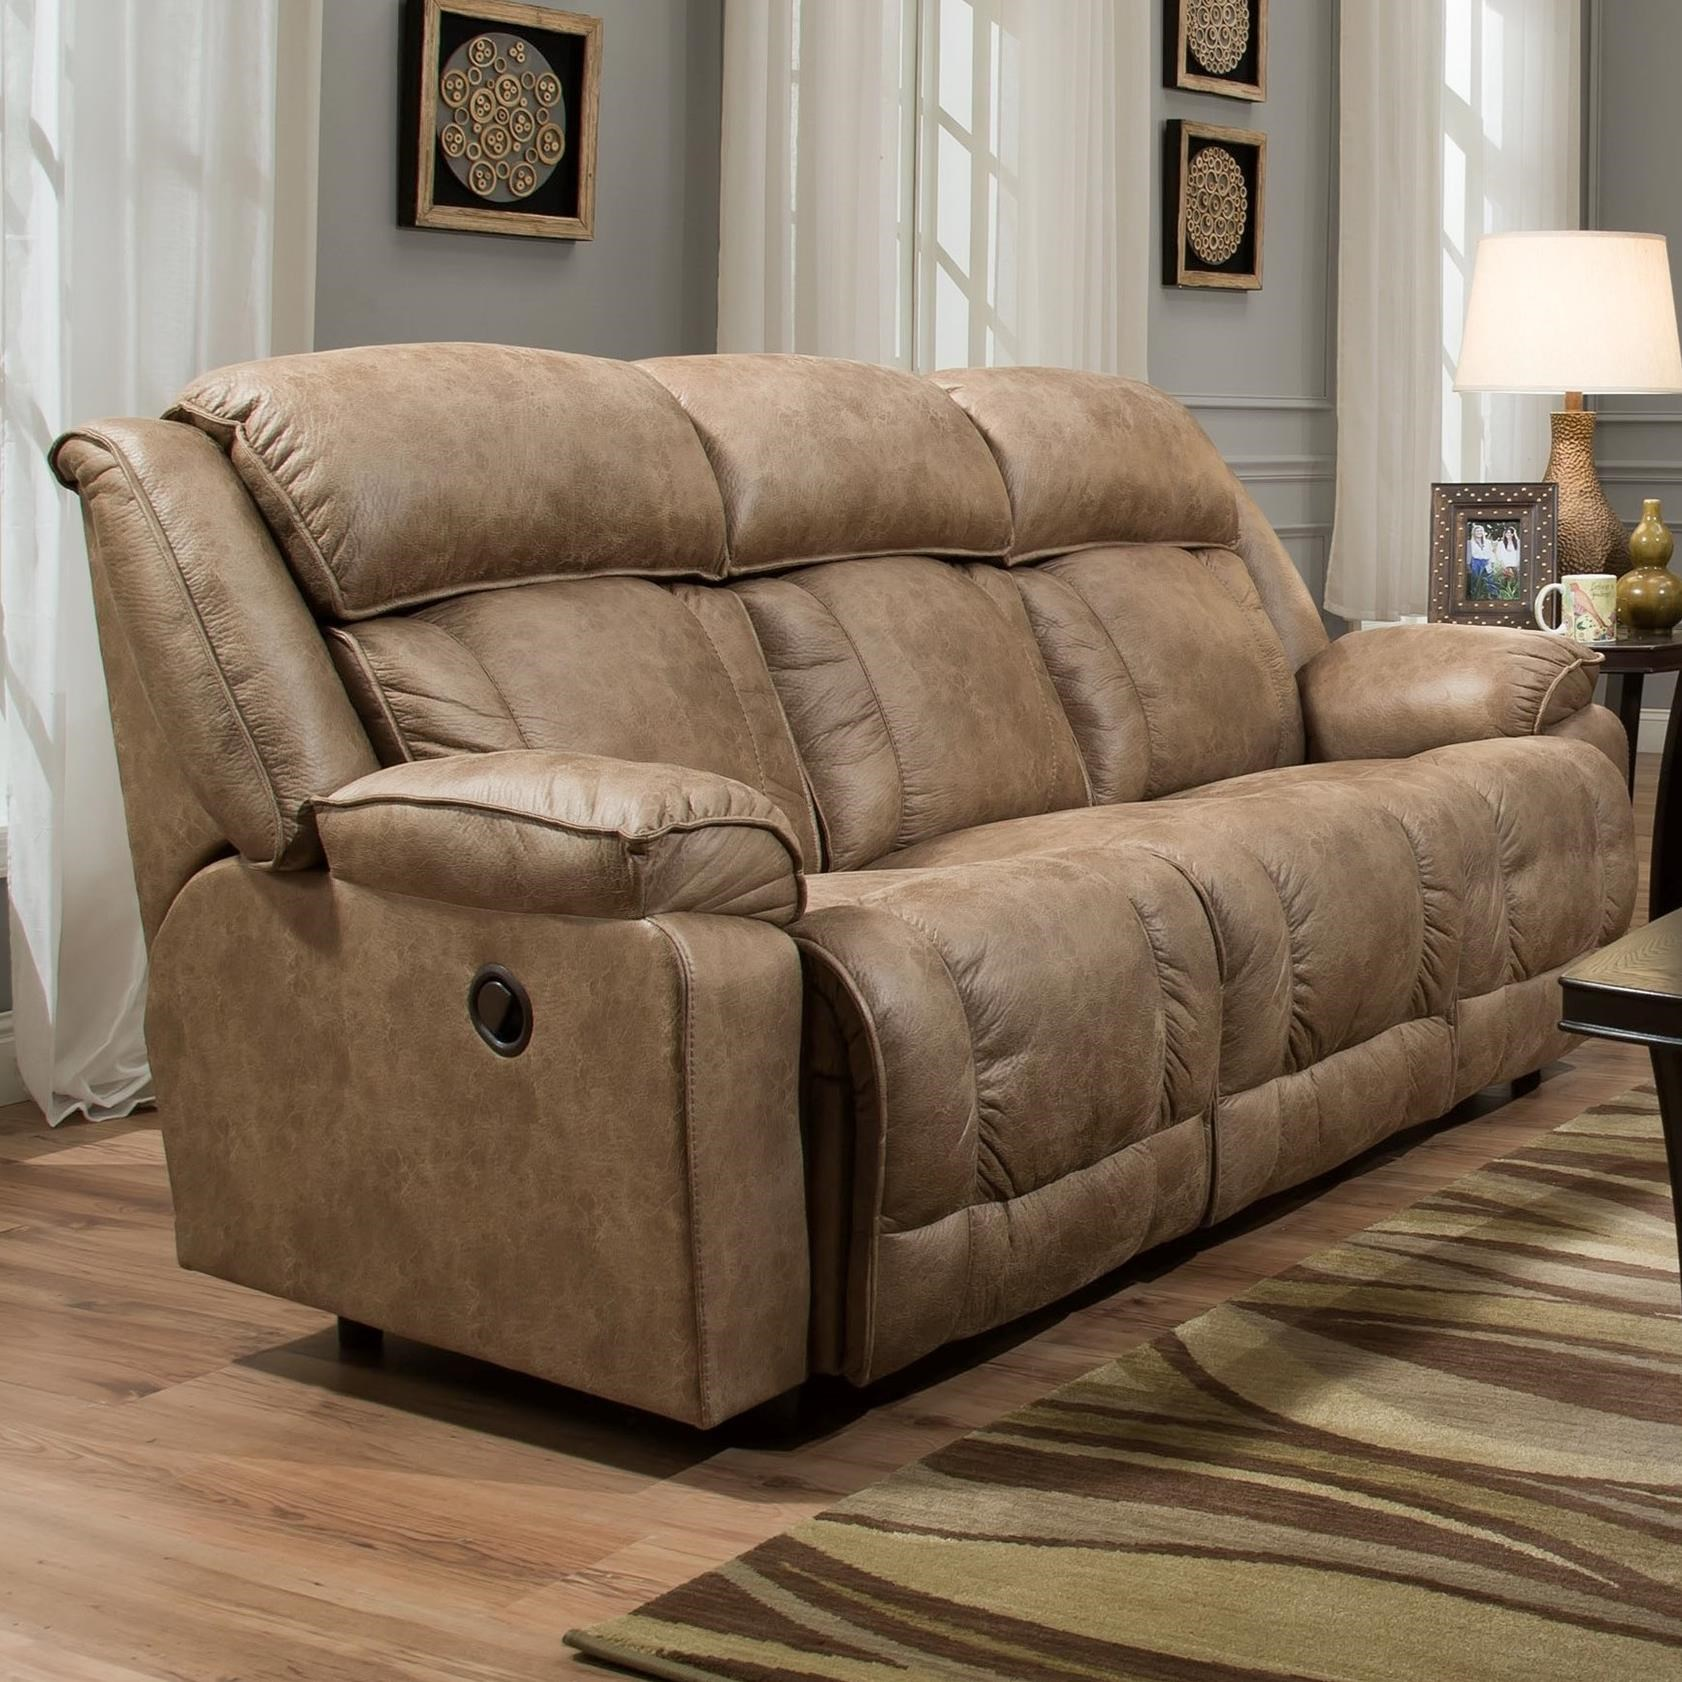 Reclining Sofa Marshall By Franklin Wilcox Furniture Reclining Sofas Corpus Christi